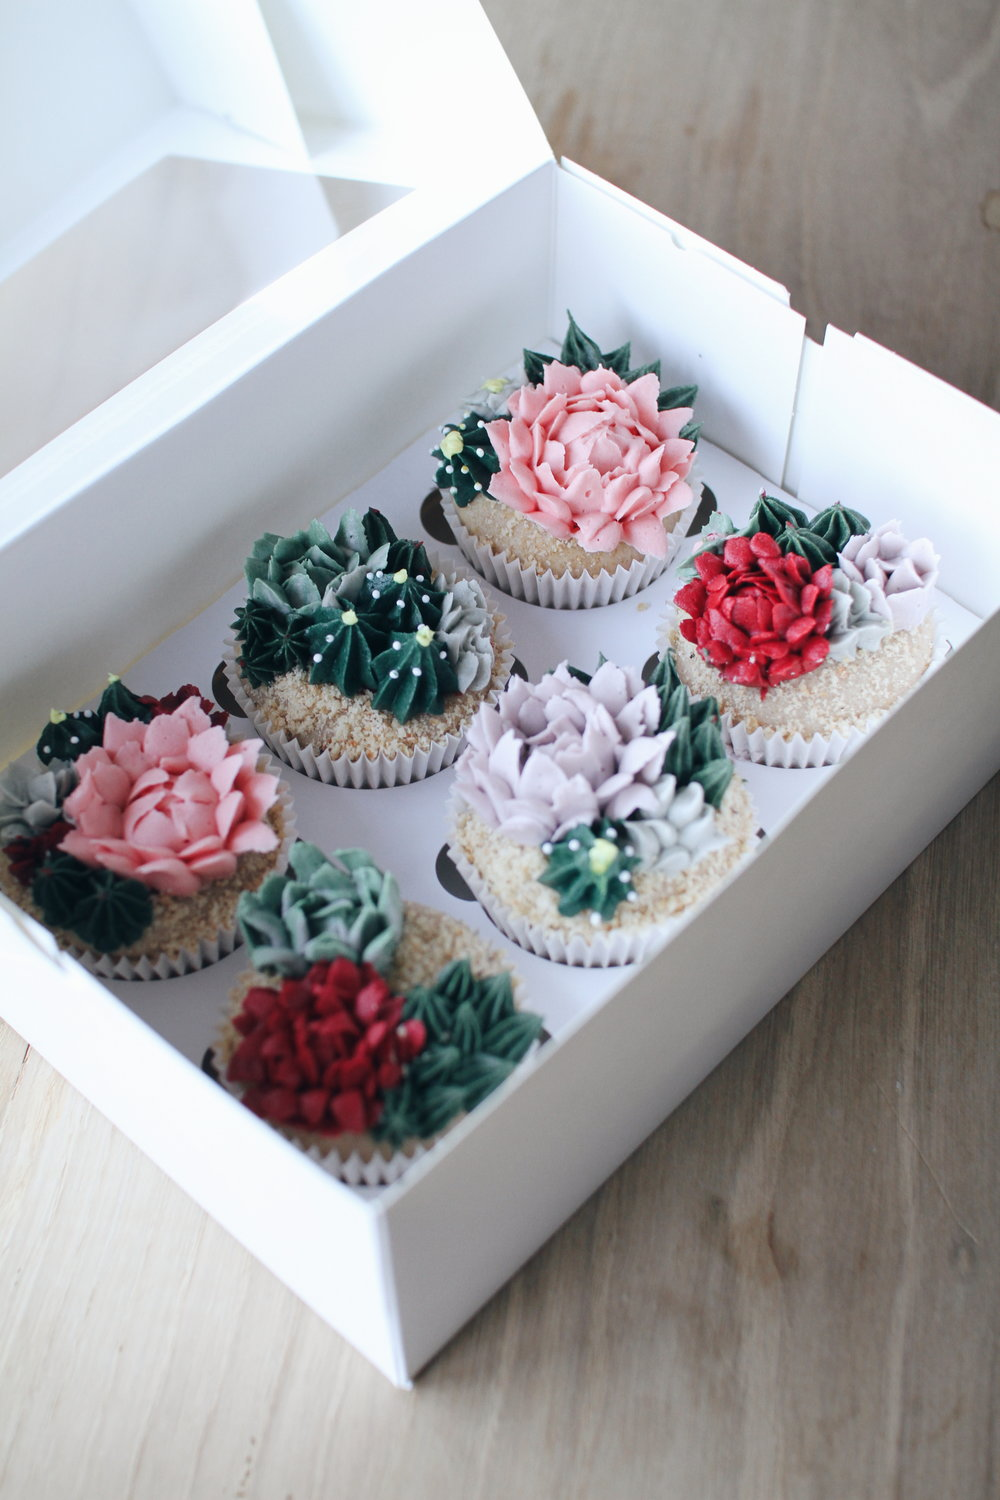 Copy of Cupcakes terarium.